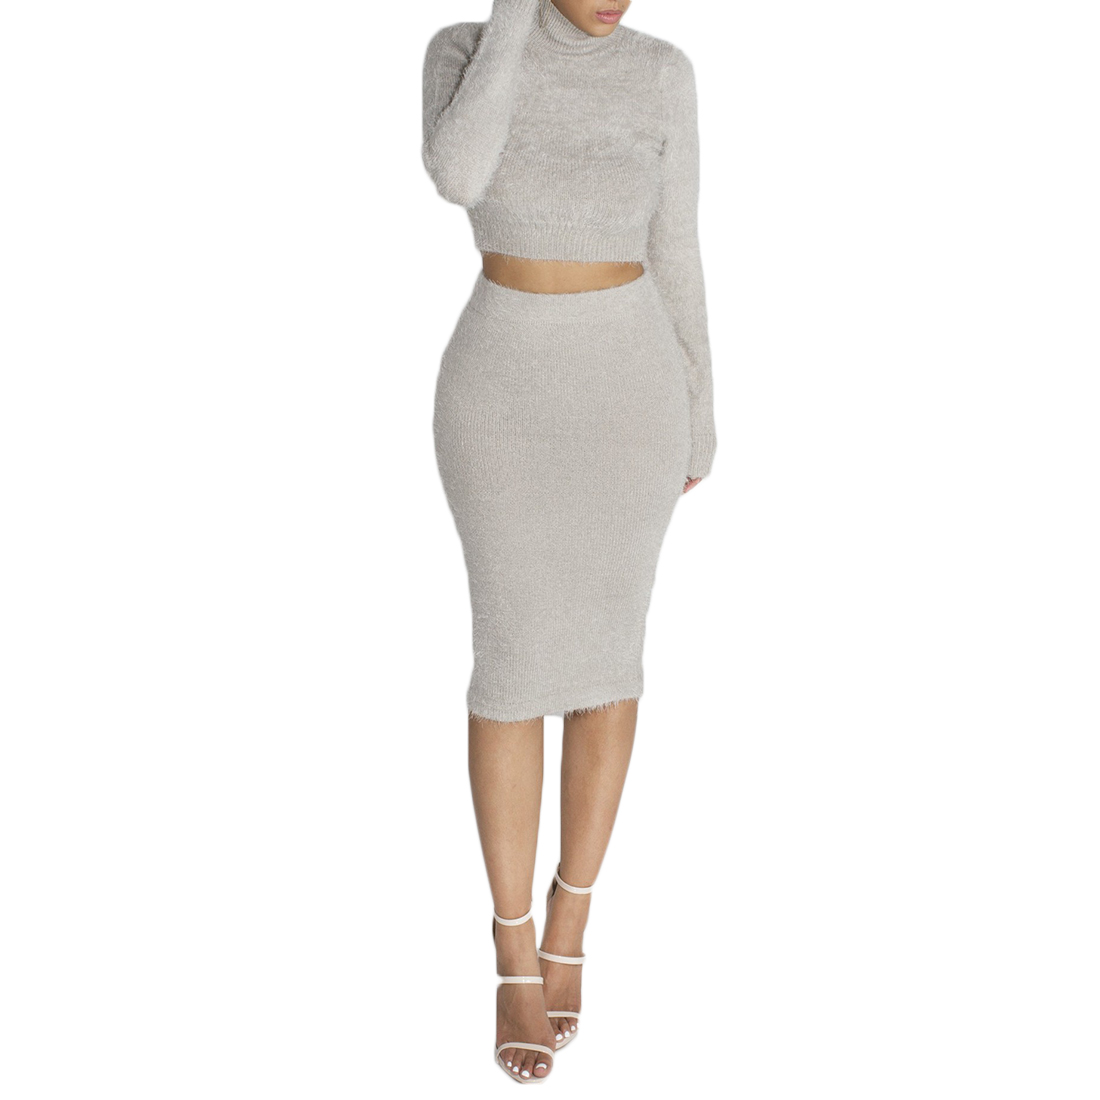 Women Two Piece Set Sweater Pencil Skirt Suit Long Sleeve Fleece Crop Tops Bodycon Skirt 2 Pieces Set Women Knitted Tracksuit